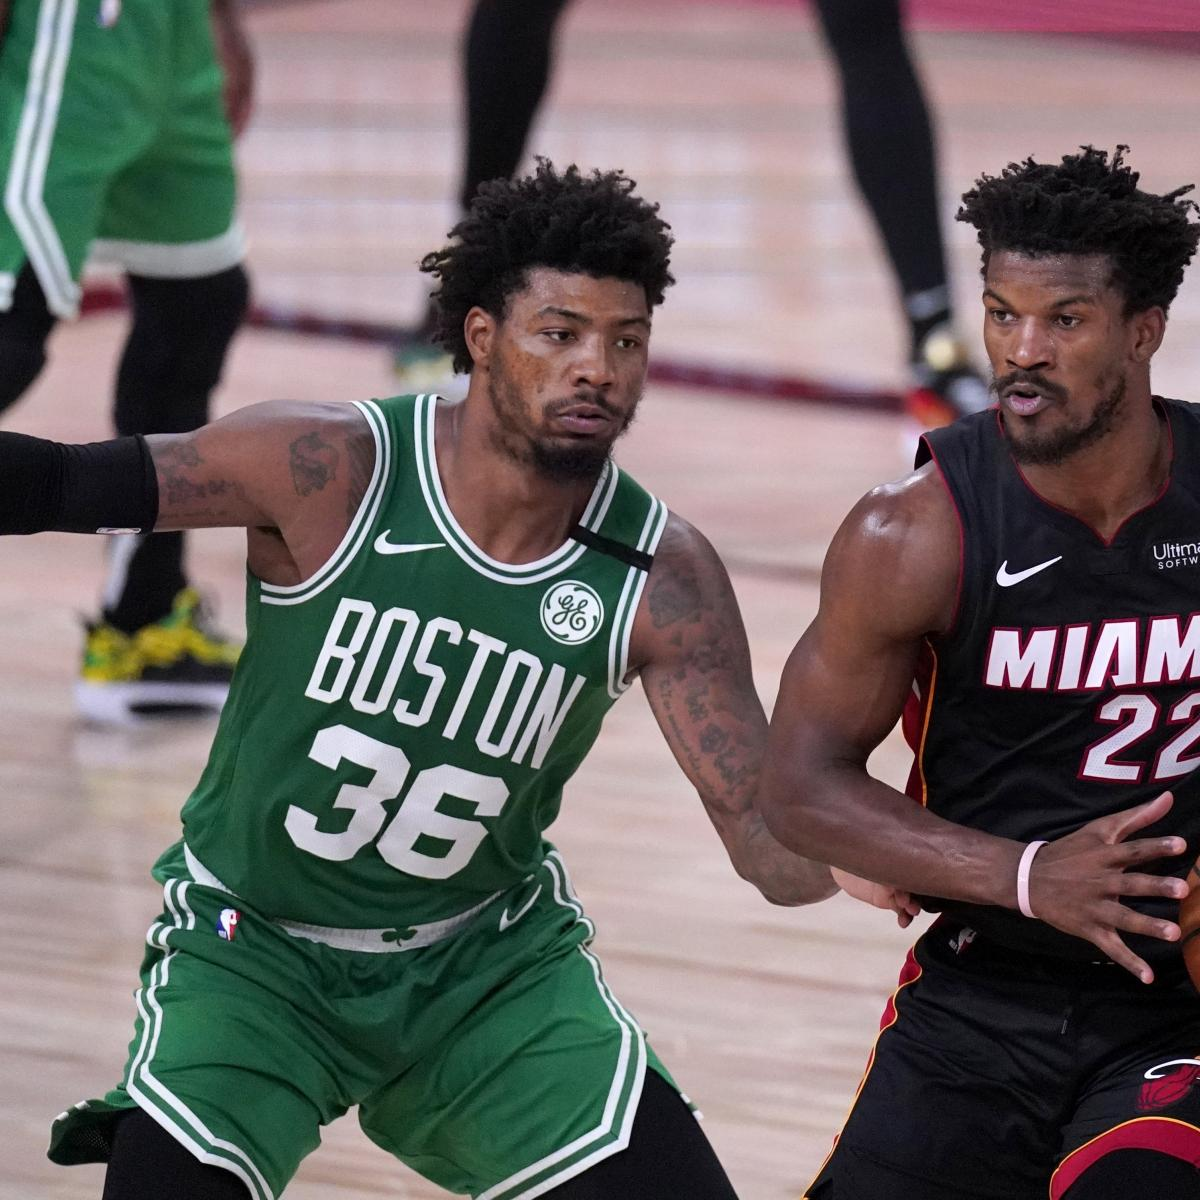 Jimmy Butler After Heat's Game 3 Loss: 'Now We'll Really See What We're Made Of'